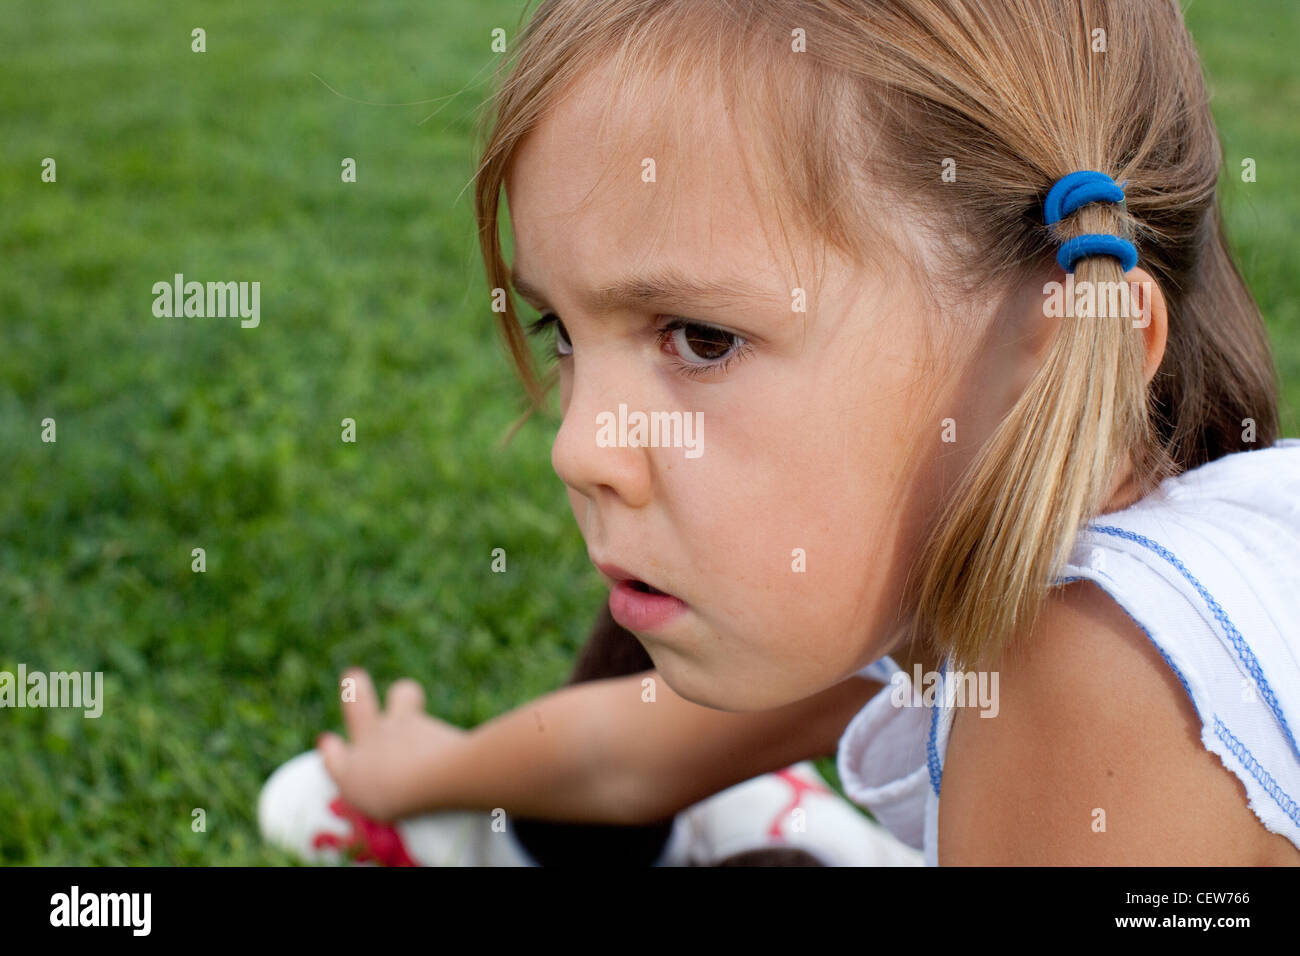 six year old girl sitting in the grass looking serious - Stock Image